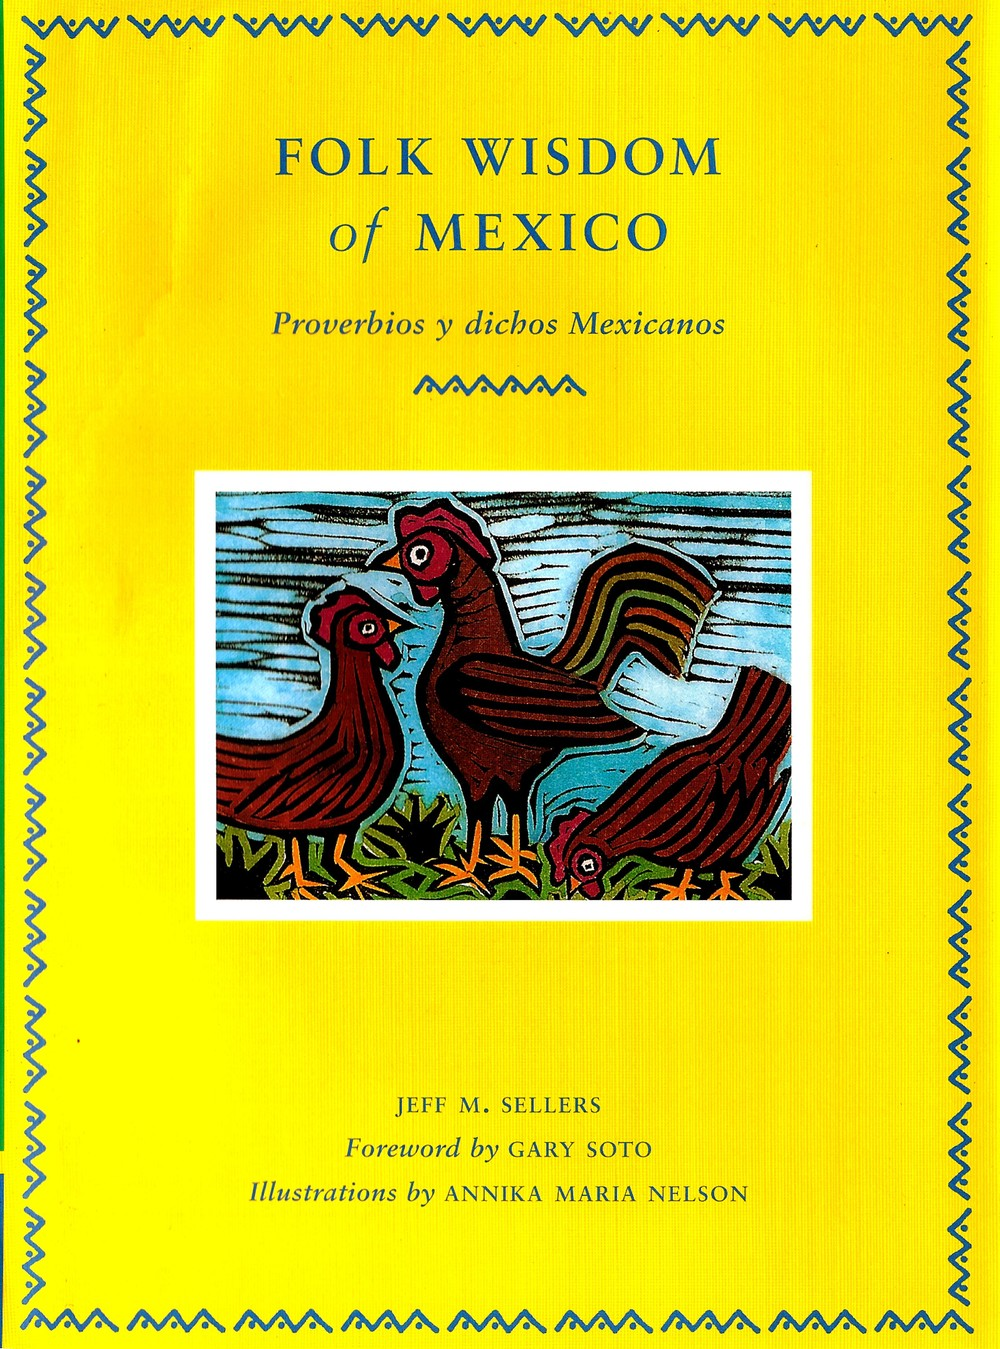 Folk Wisdom of Mexico_cover.jpg